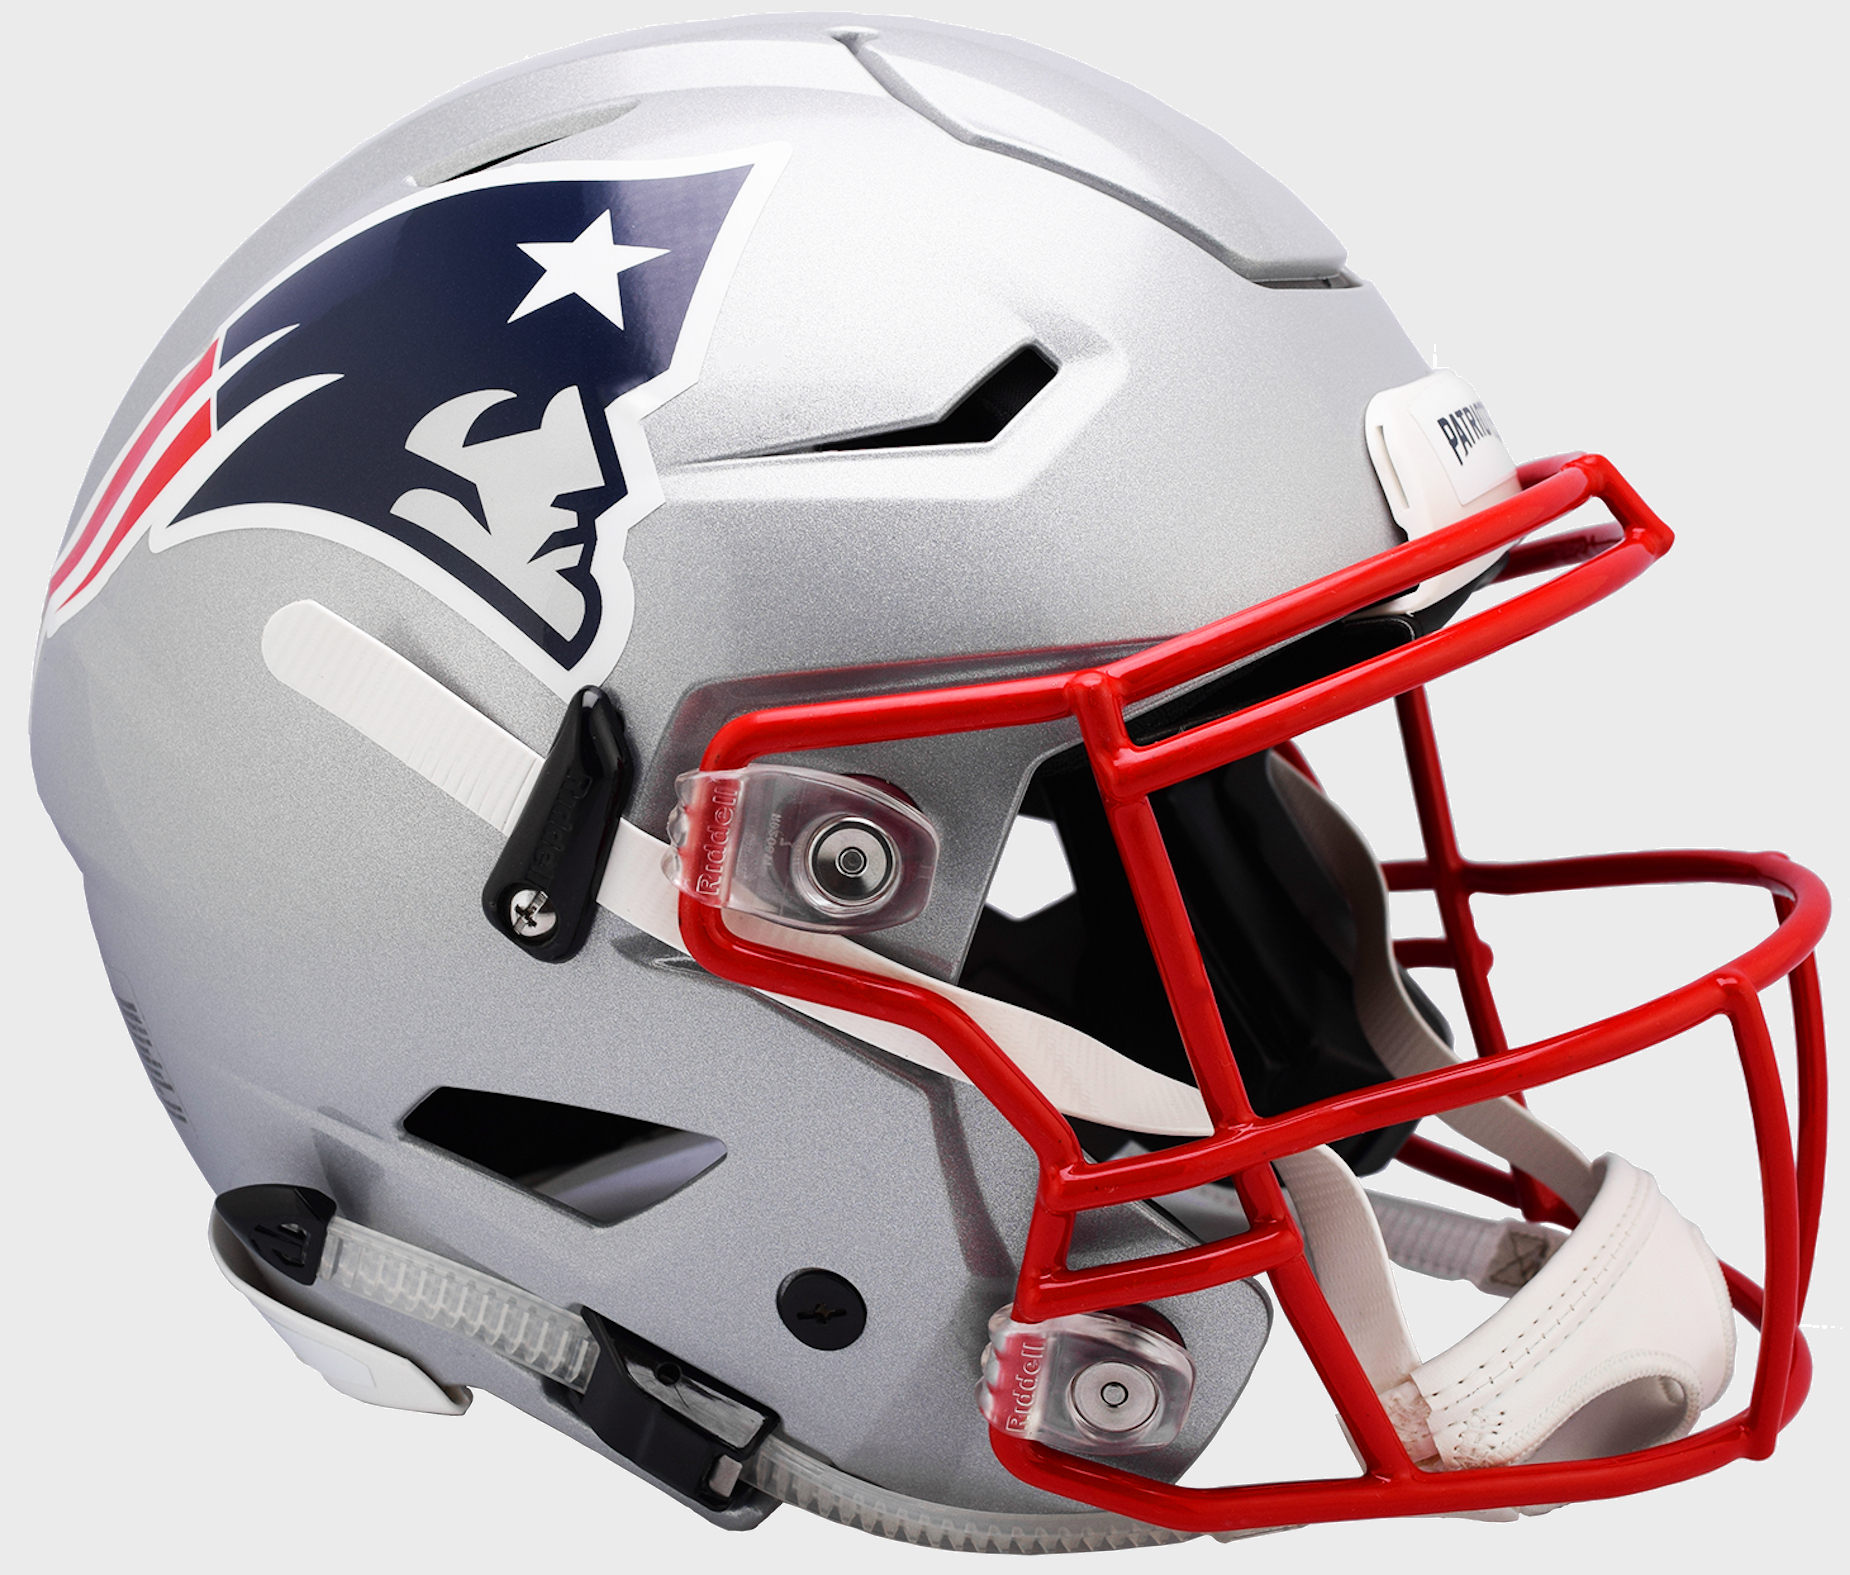 New England Patriots SpeedFlex Football Helmet